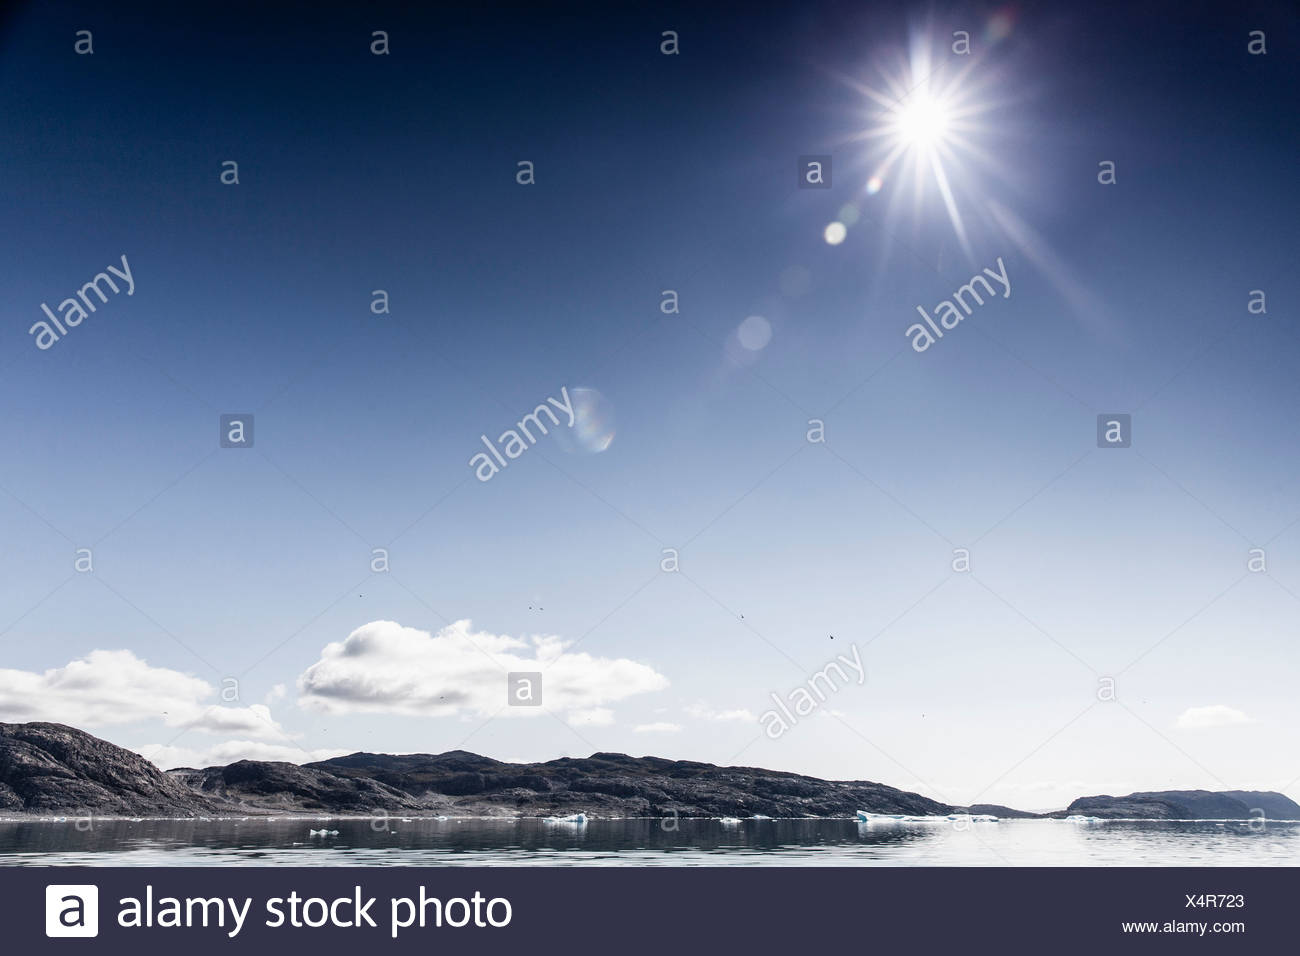 View of sea and rocks with sun shines brightly on sunny day - Stock Image